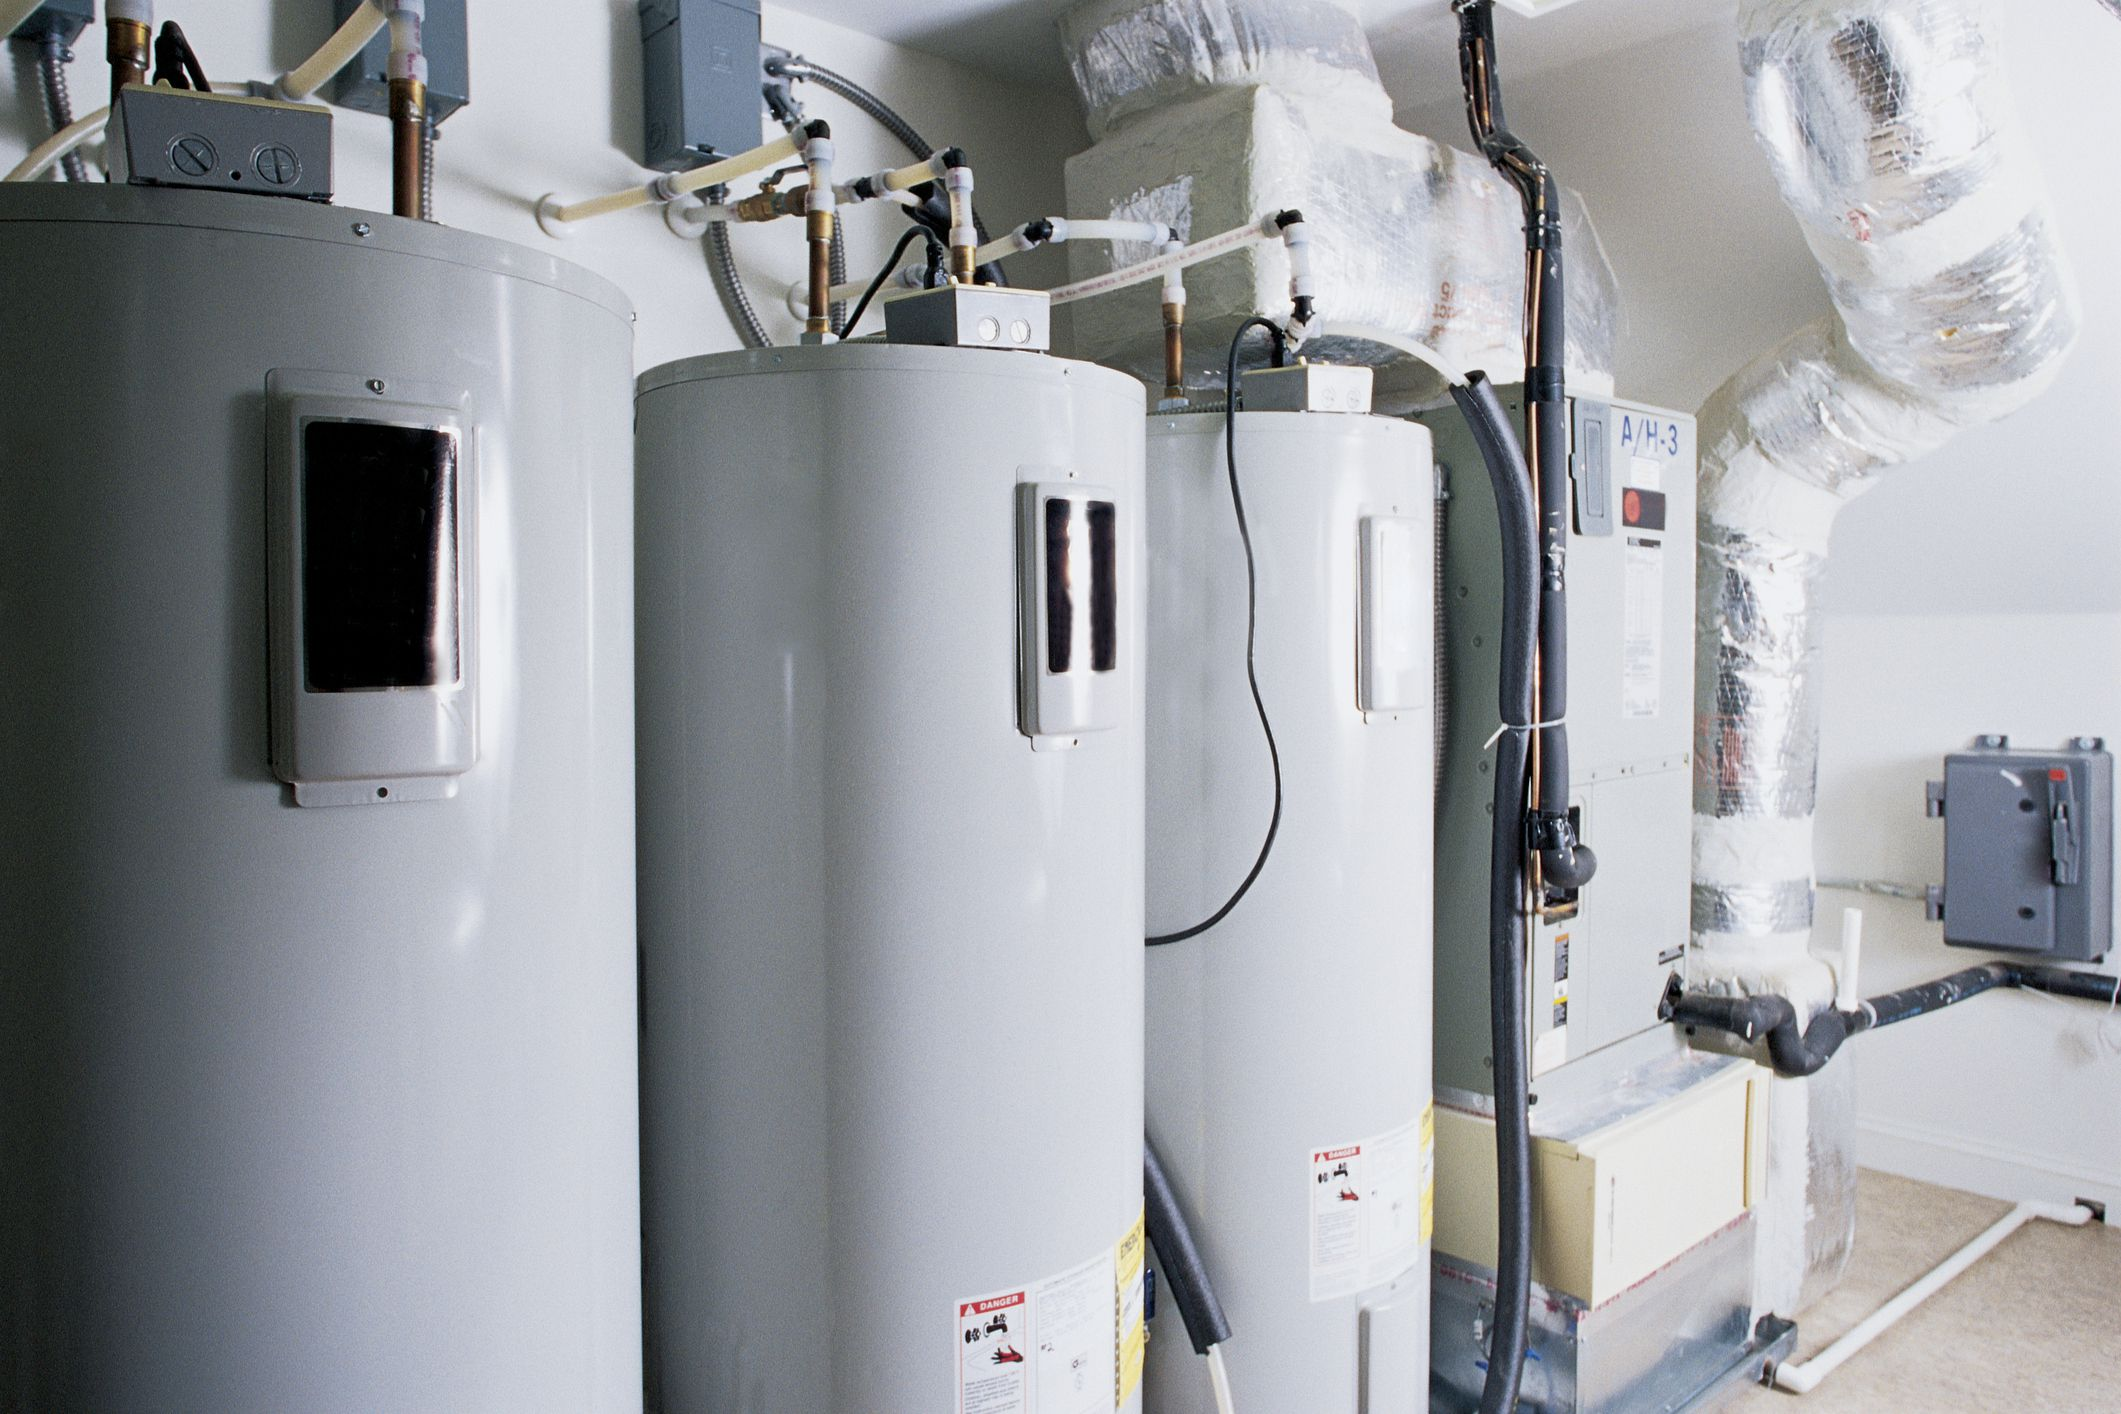 How To Replace A Electric Water Heater Heating Element